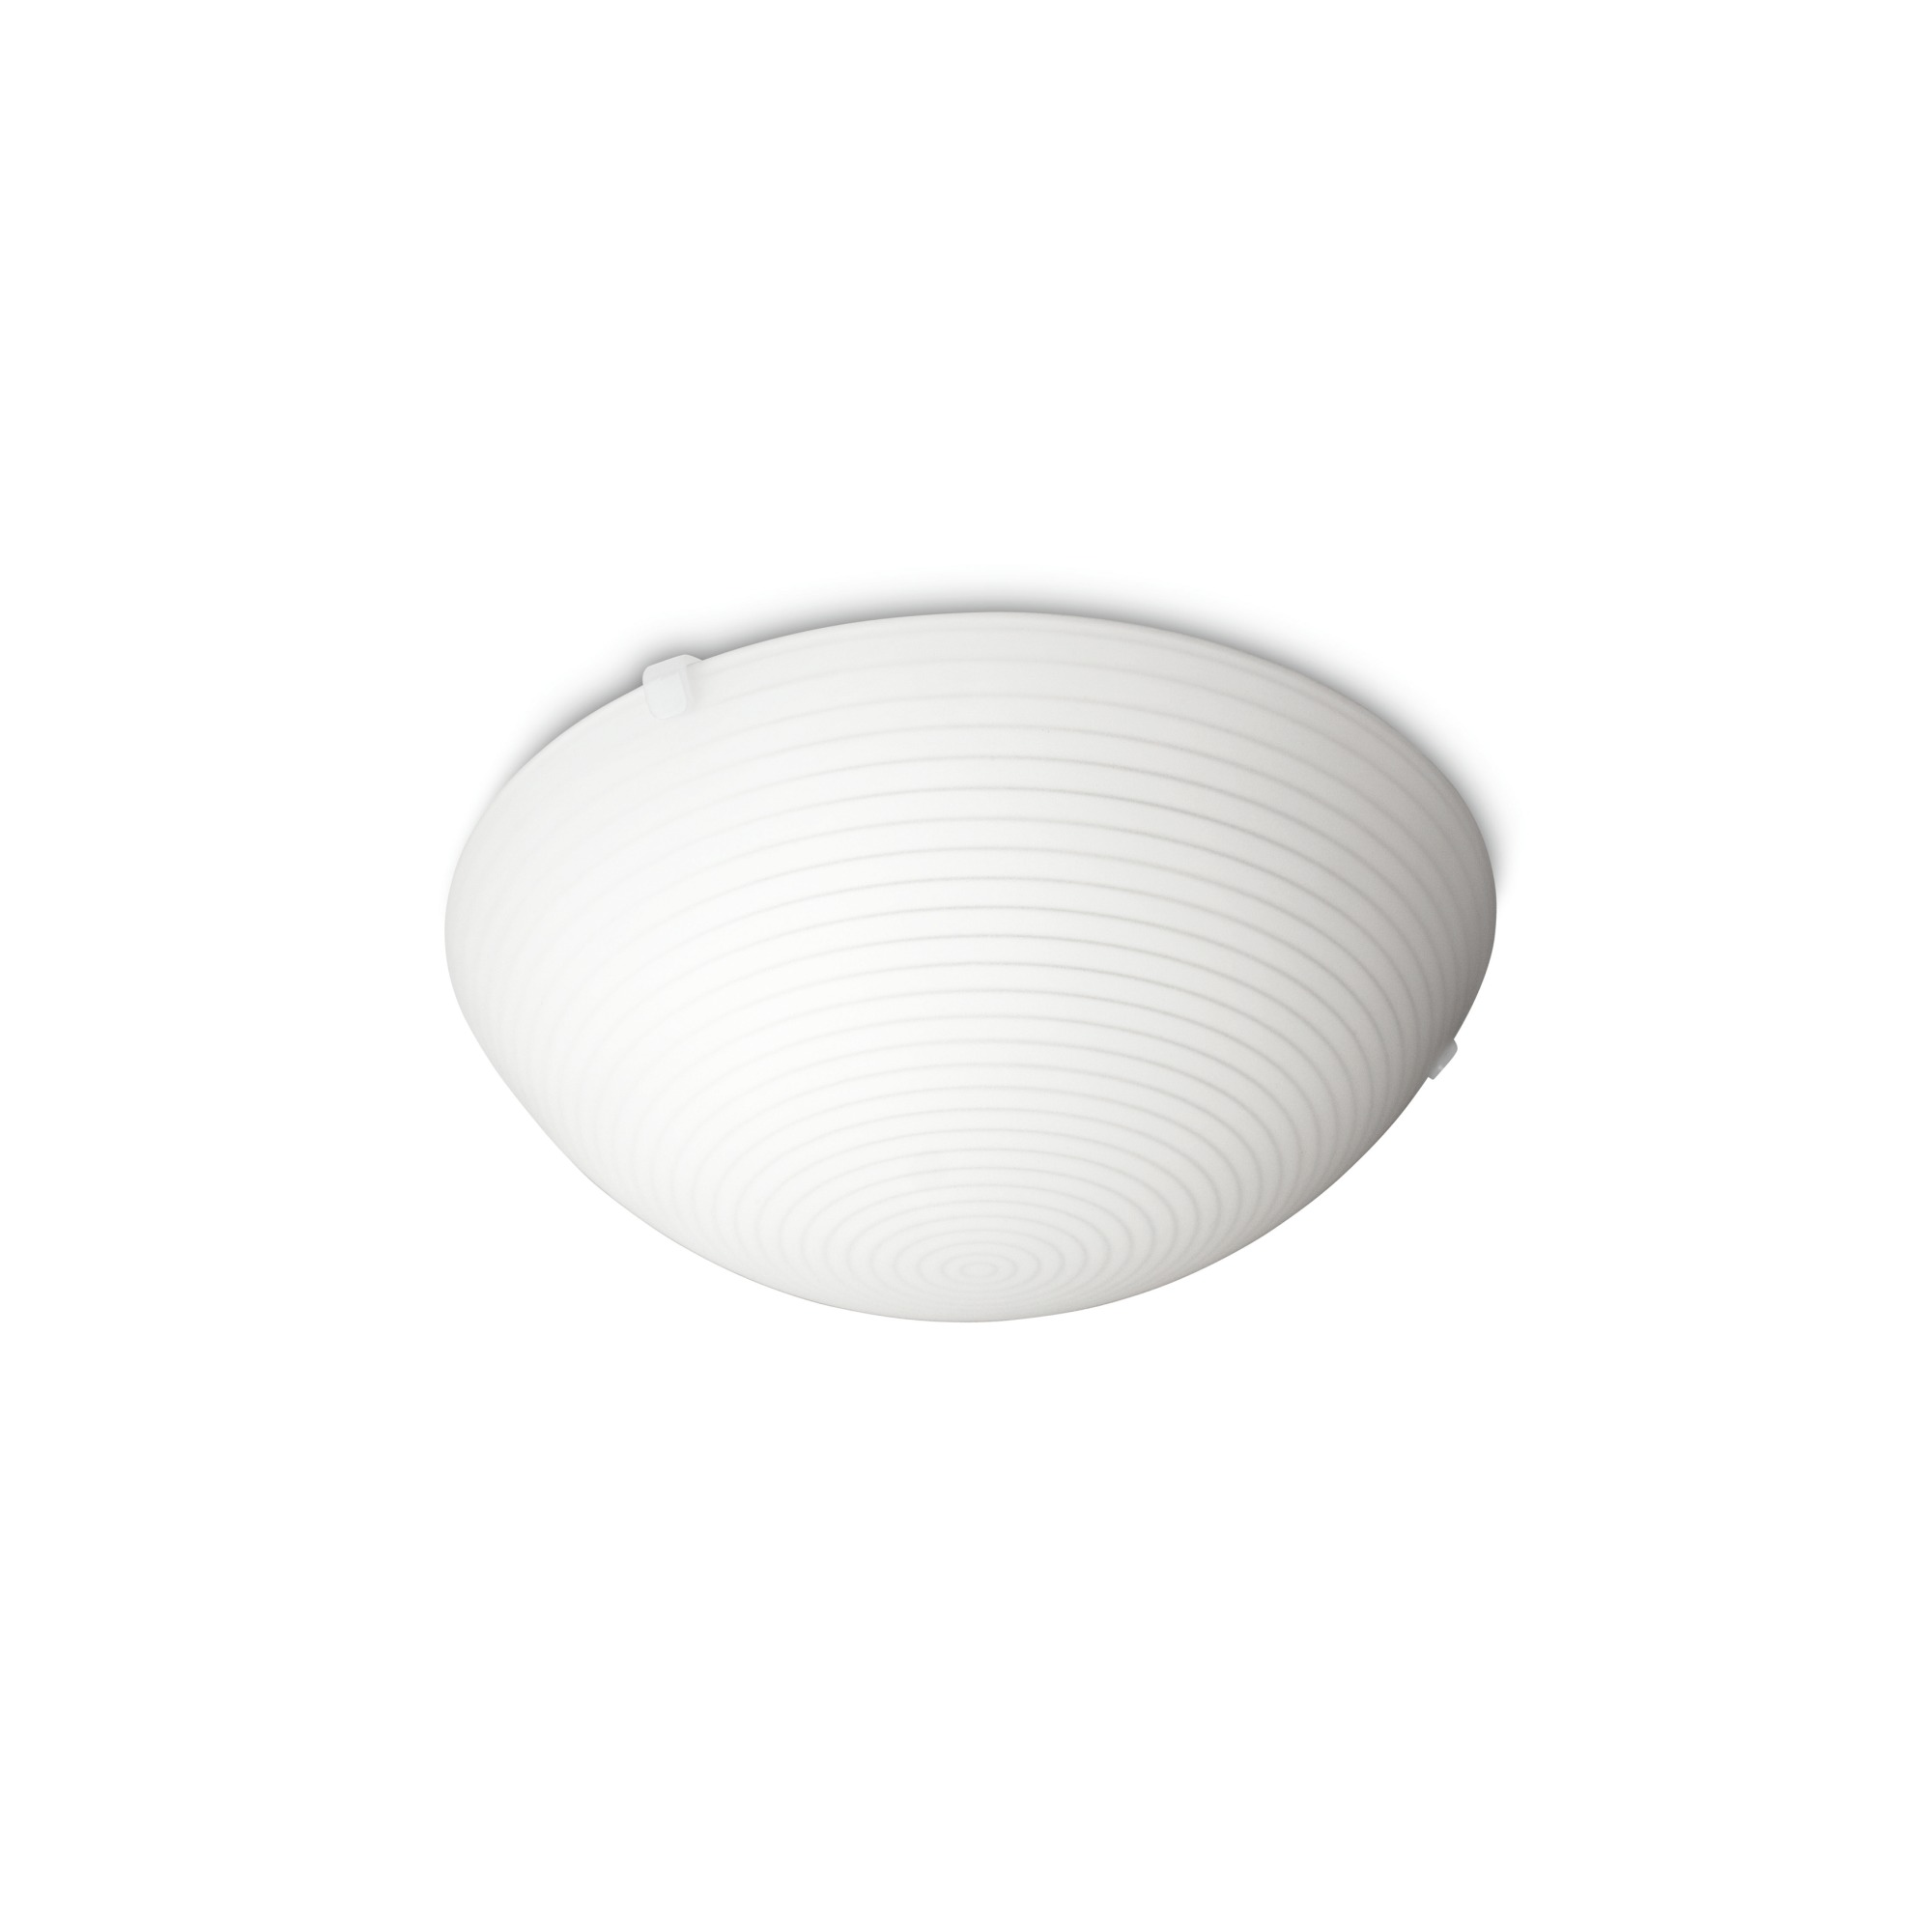 Philips myliving fallow plafondlamp 230 v 18 w e27 wit